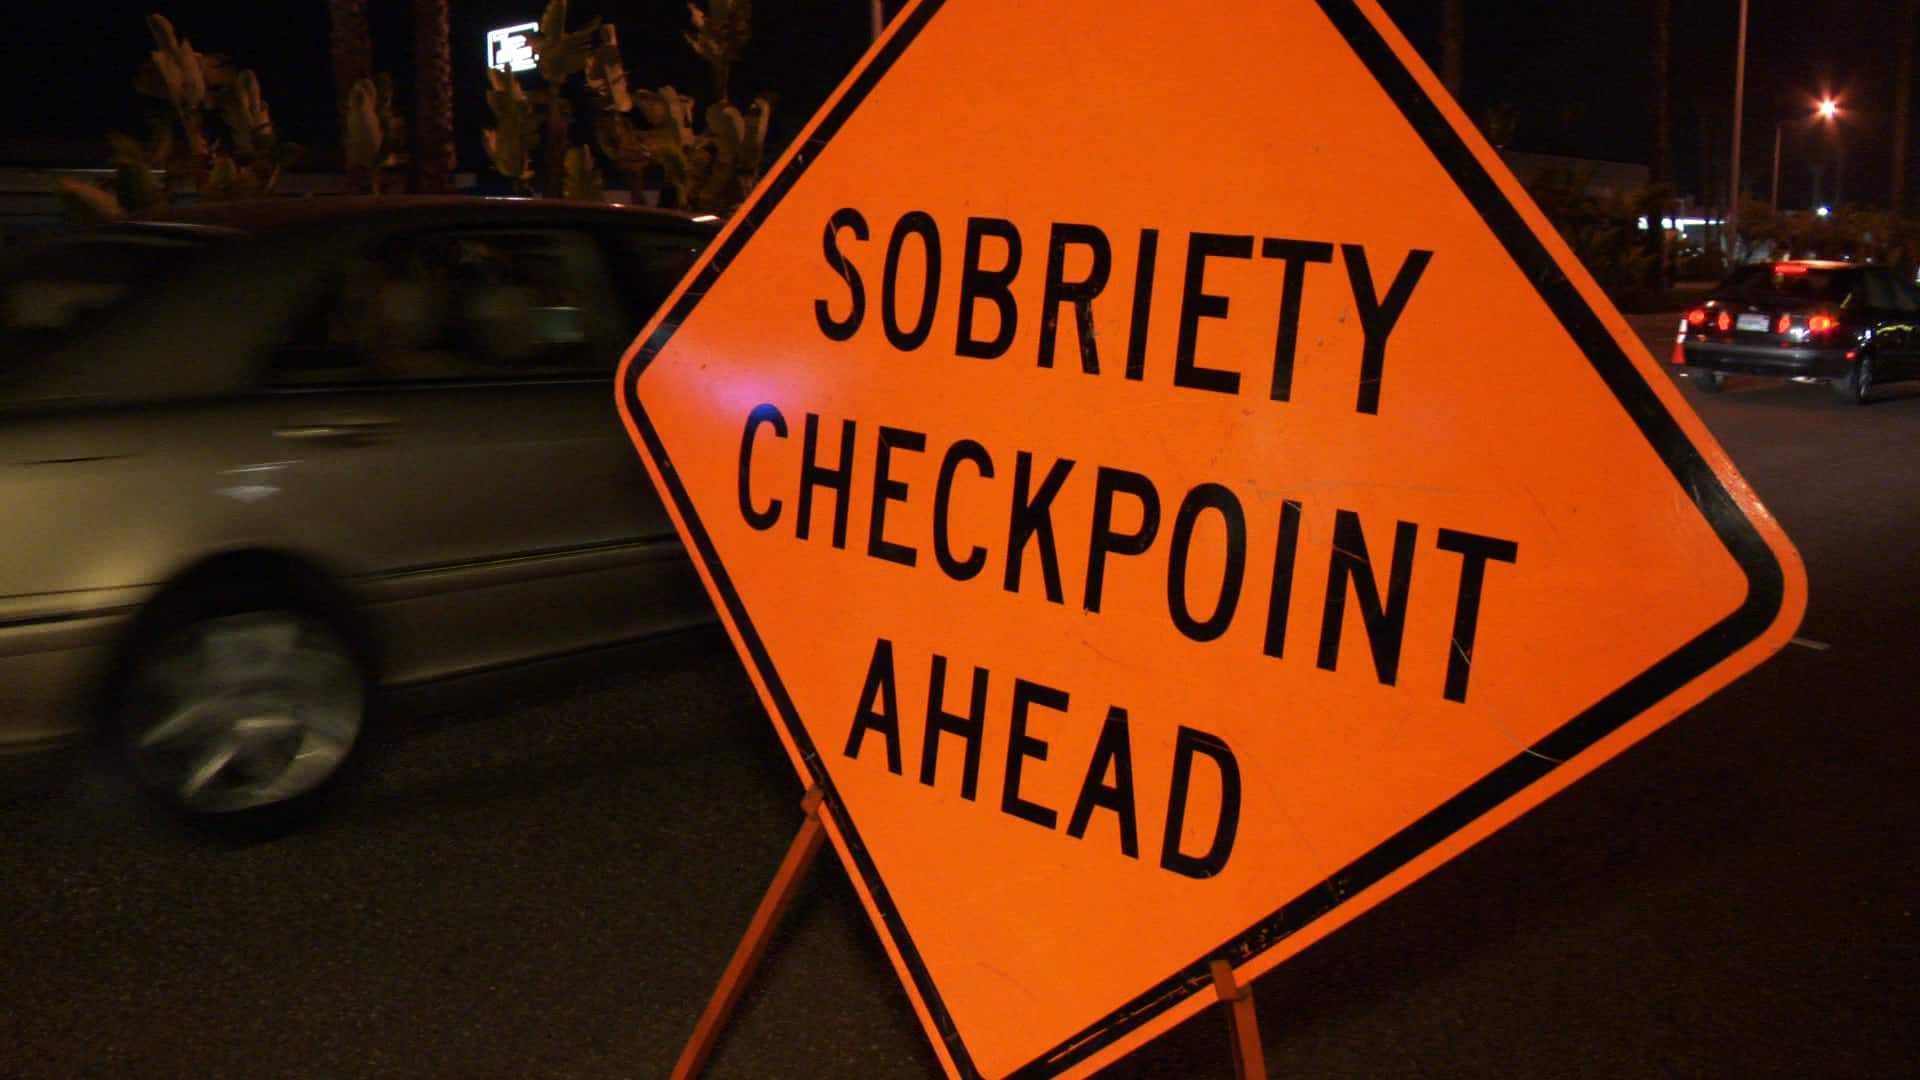 Idaho, sobriety, attorney, dui, legal, lawyer, sr22, non-owner, non-driver, without a car, checkpoint, rehab, Police, driver diversion program